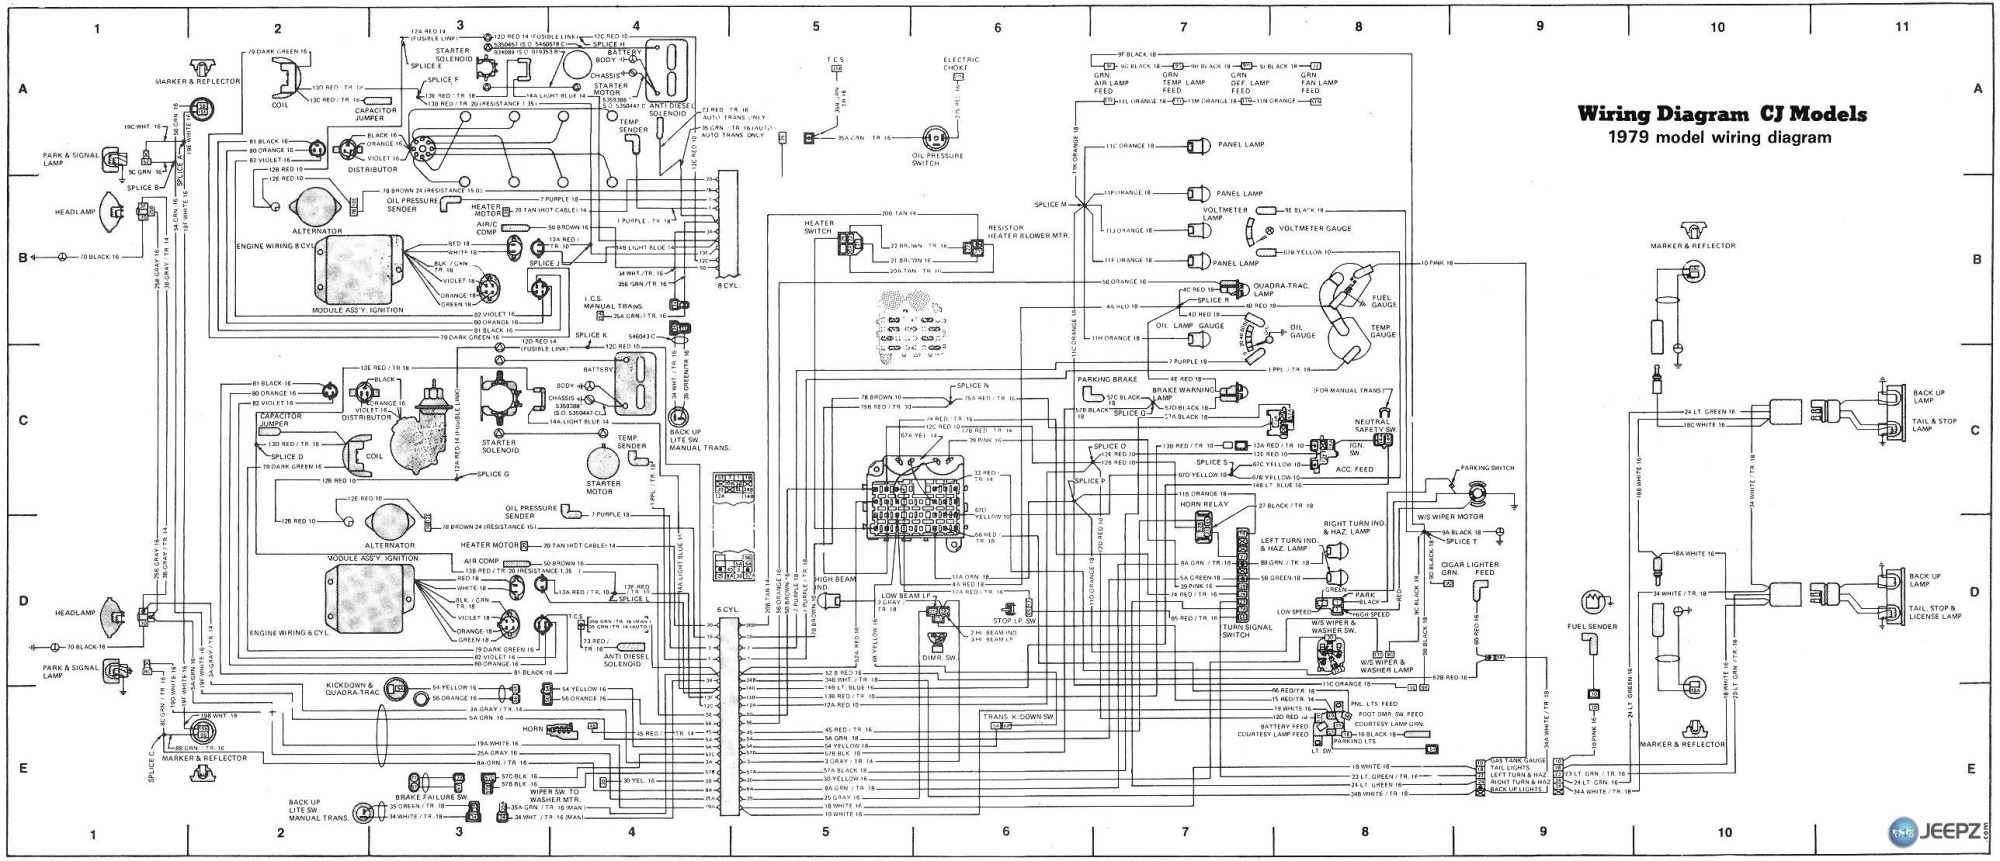 hight resolution of 1967 jeep cj5 wiring diagram wiring diagram name 1967 jeep cj5 wiring diagram 1967 jeep wiring diagram